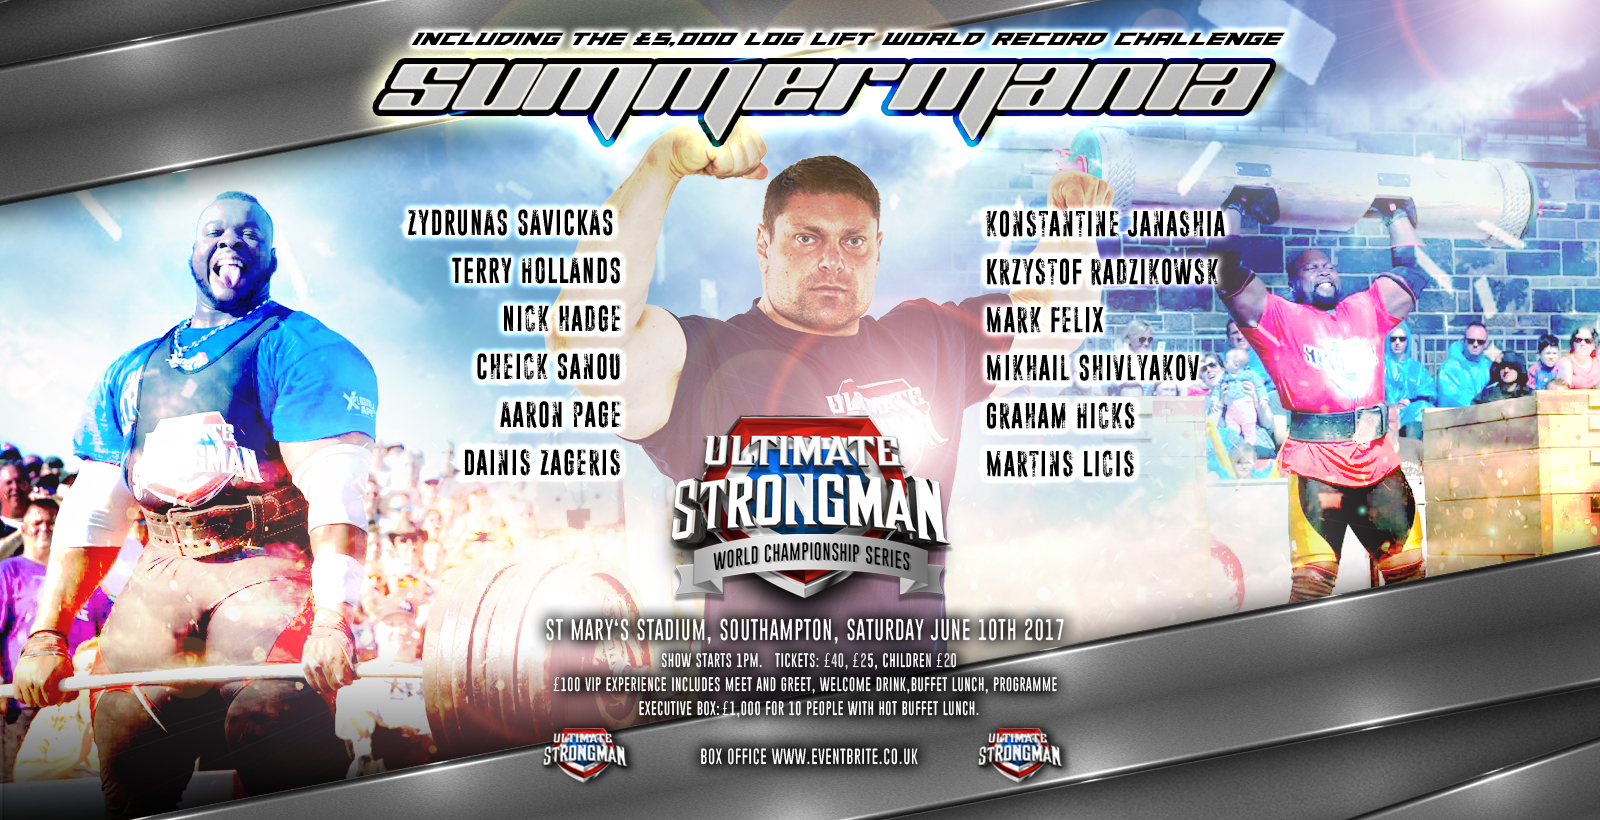 Ultimate strongman summermania june 10th southampton summermania m4hsunfo